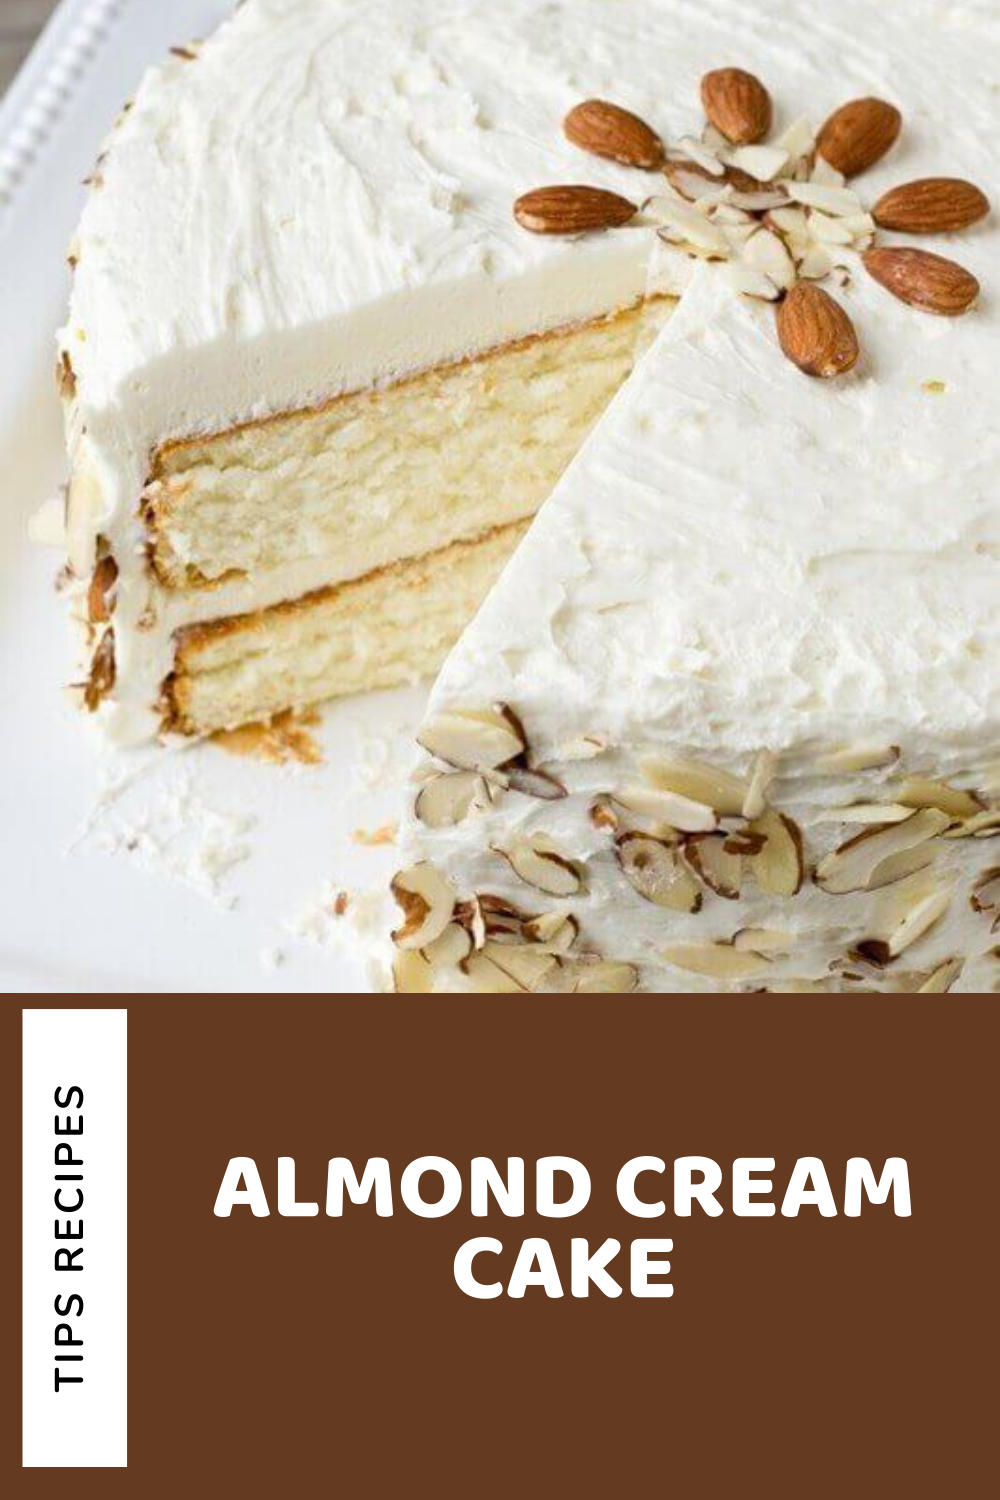 Almond Cream Cake In 2020 Homemade Recipes Cake Recipes Almond Cream Recipe